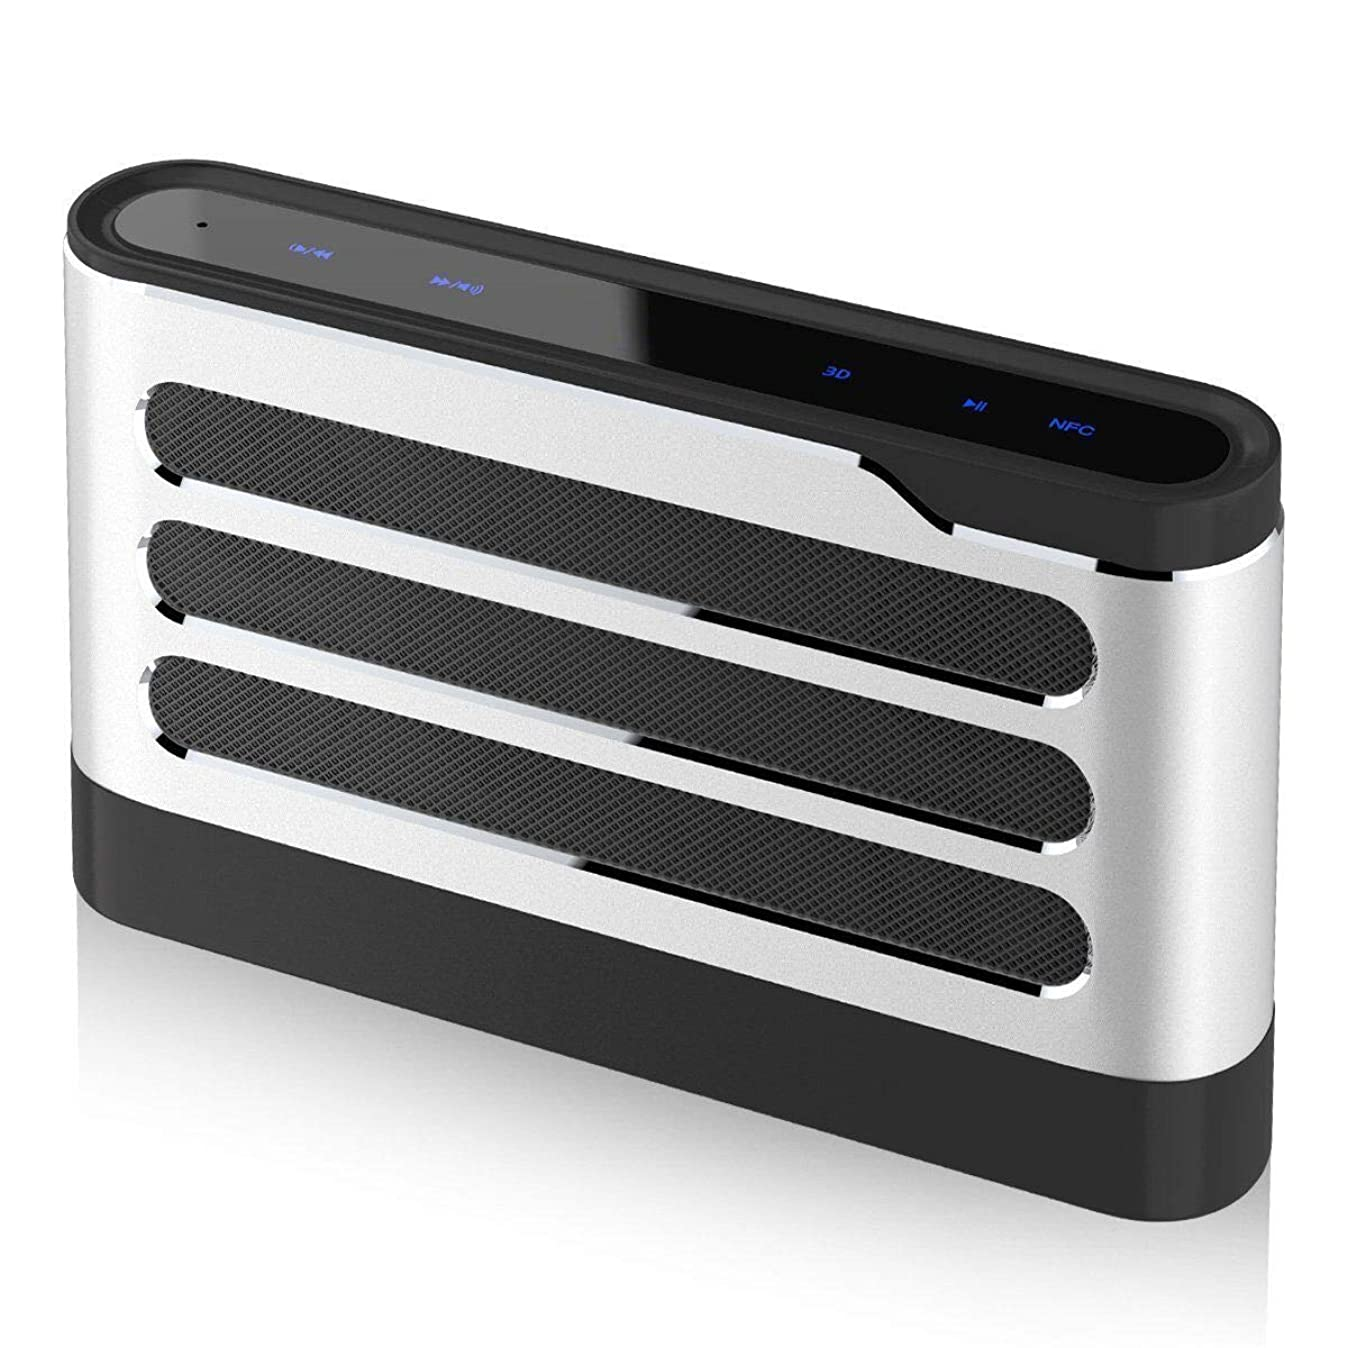 LFS 40W Bluetooth Speakers, Wireless Speakers with Digital Sound Field Processing(DSP), Surround Stereo Sound, Strong Bass for iPhone, iPad, Samsung, Nexus, HTC, Laptops and More f4611268523